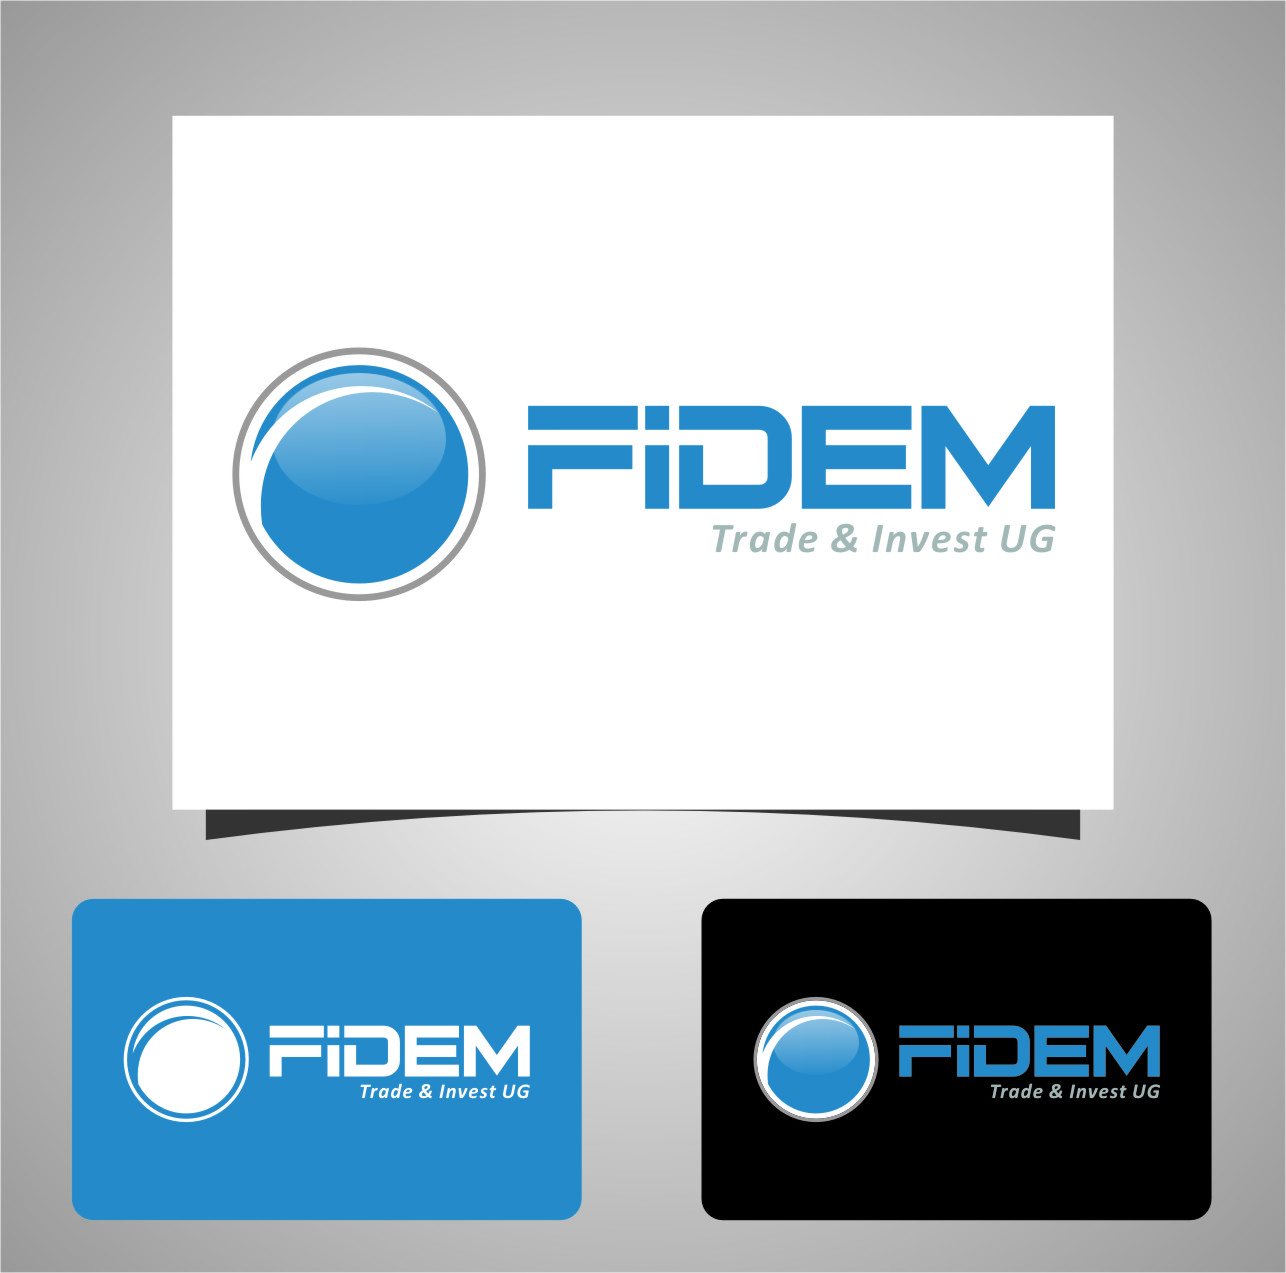 Logo Design by Ngepet_art - Entry No. 686 in the Logo Design Contest Professional Logo Design for FIDEM Trade & Invest UG.